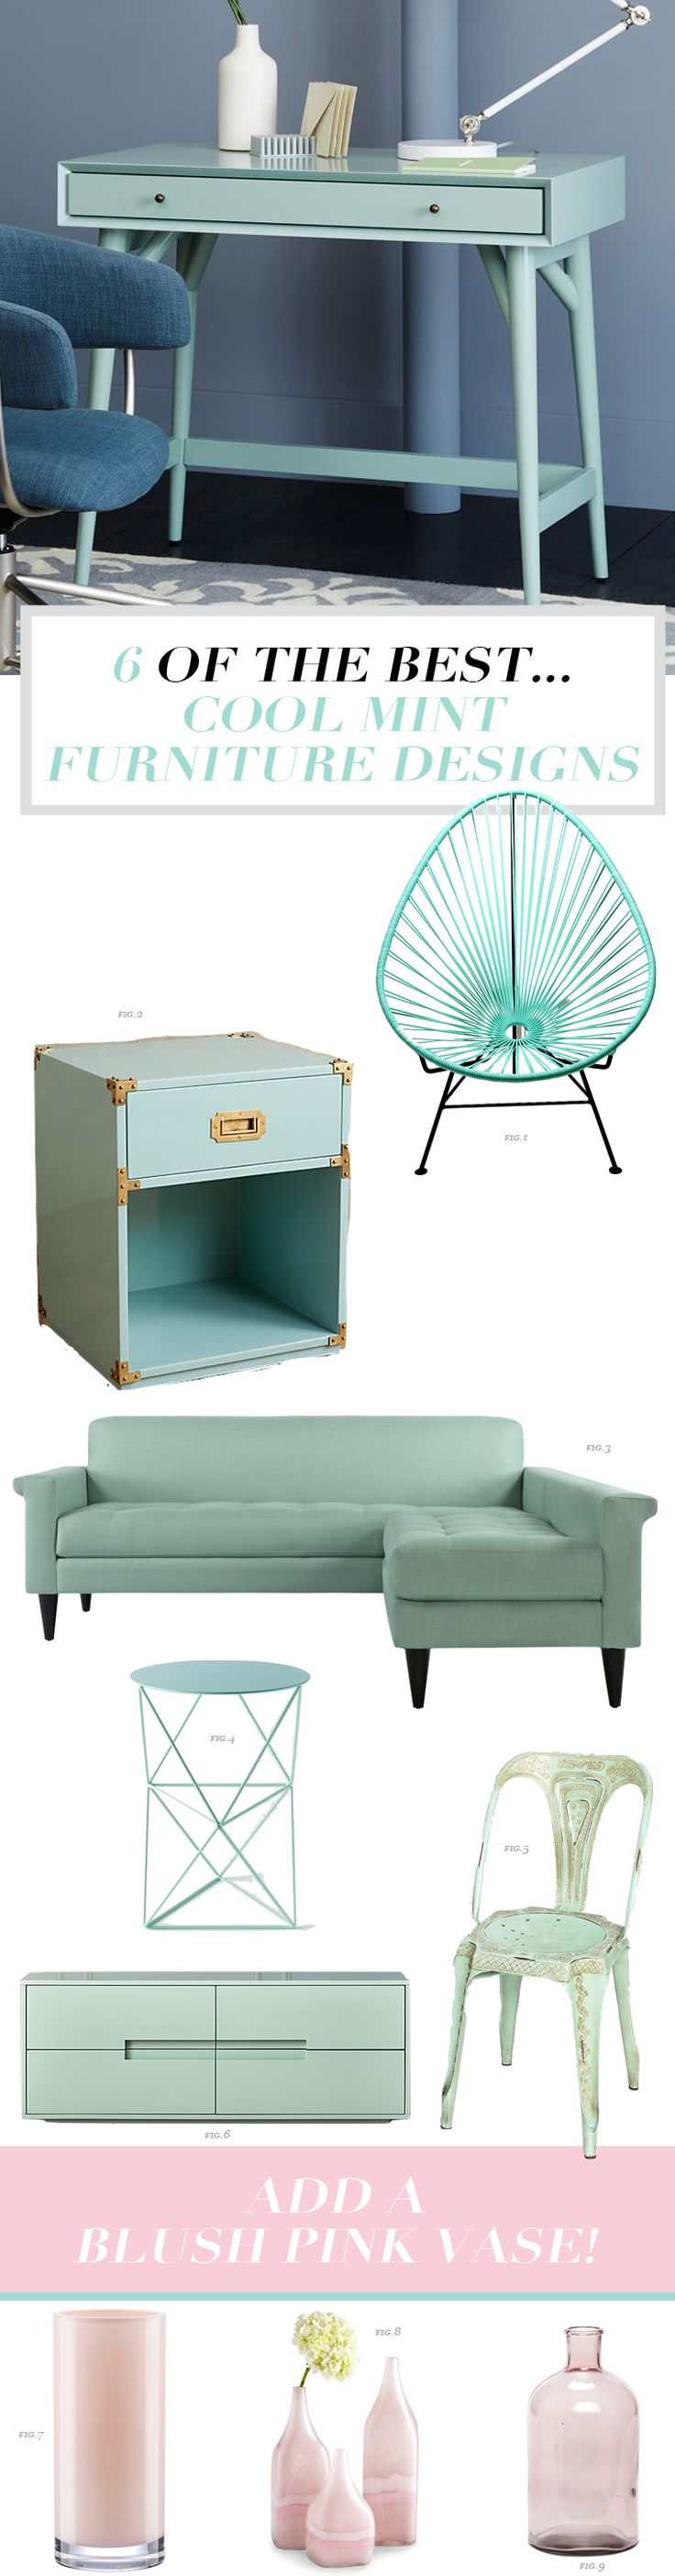 Hurrah, spring is officially here! In honor of the longer days and warmer temperatures I wanted to focus on one of my favorite shades of blue-green in this week's Six of the Best column – MINT! Specifically, I'm shining the spotlight on mint furniture and how these stylish pieces can elevate your space for the new spring season. Let's dive in!    eFurnitureMart - 100% Furniture Financing, Free Shipping, Discounted Furniture, Discount Coup